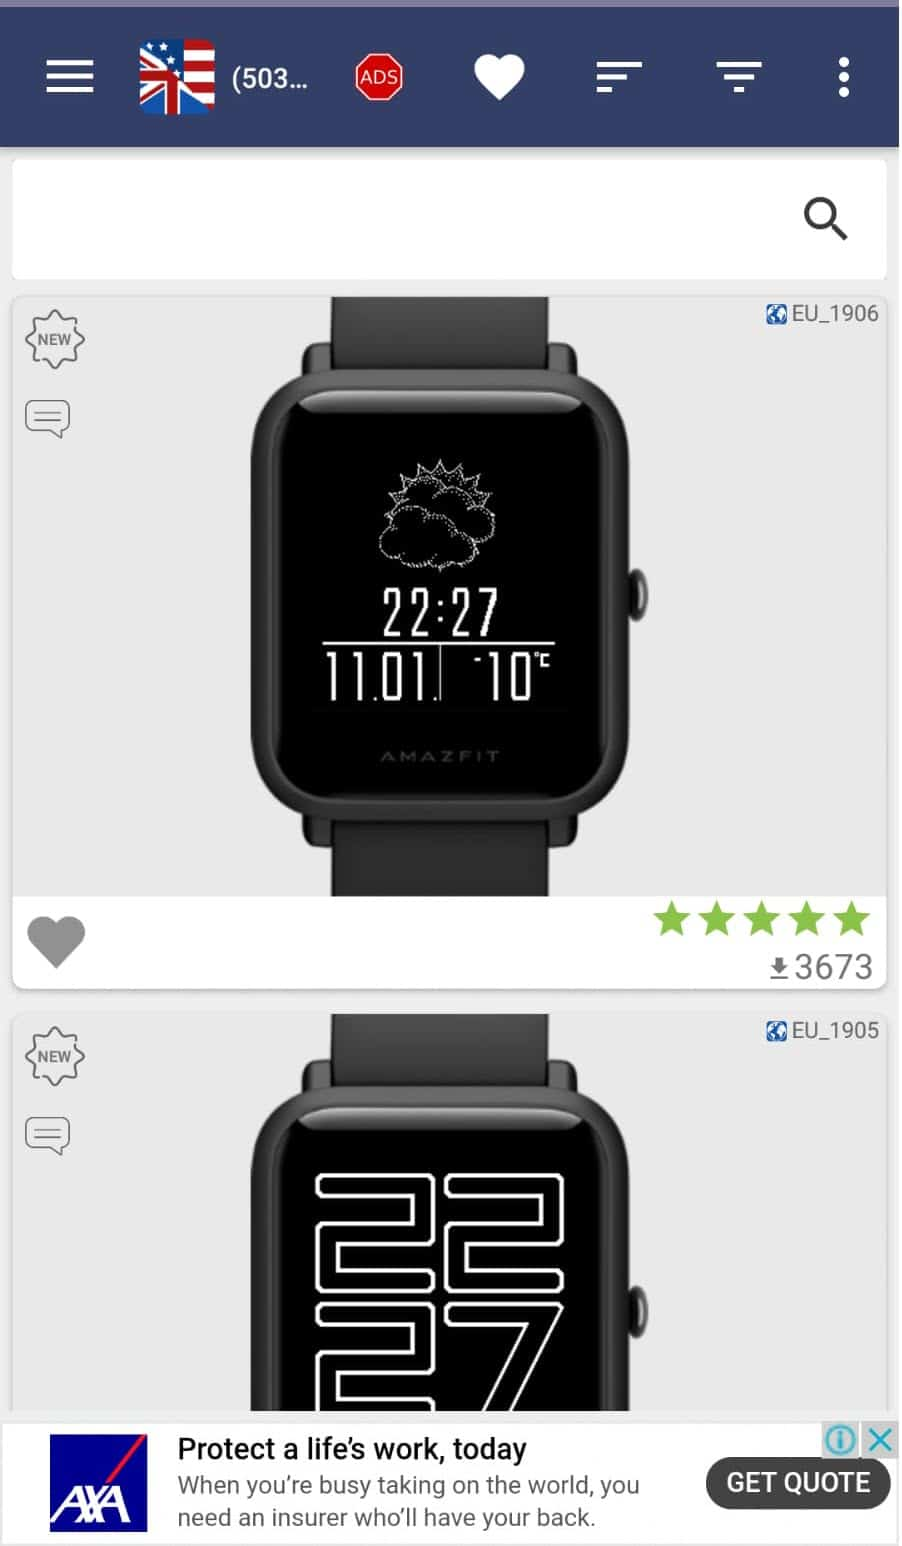 step 1 - selecting Amazfit watch faces from list